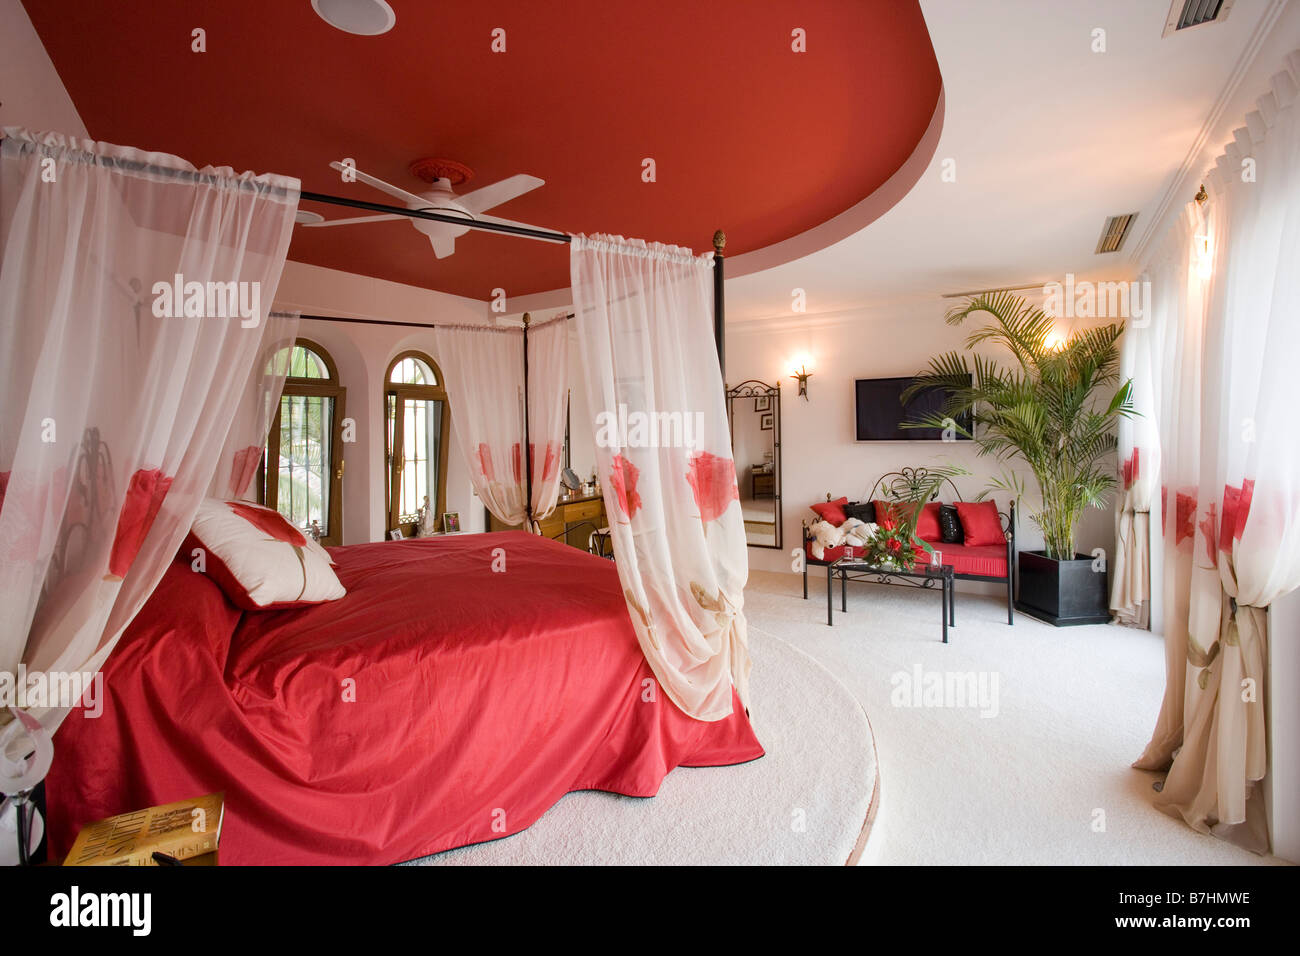 Red Ceiling Above Bed With White Voile Drapes And Red Bedlinen In Stock Photo Alamy